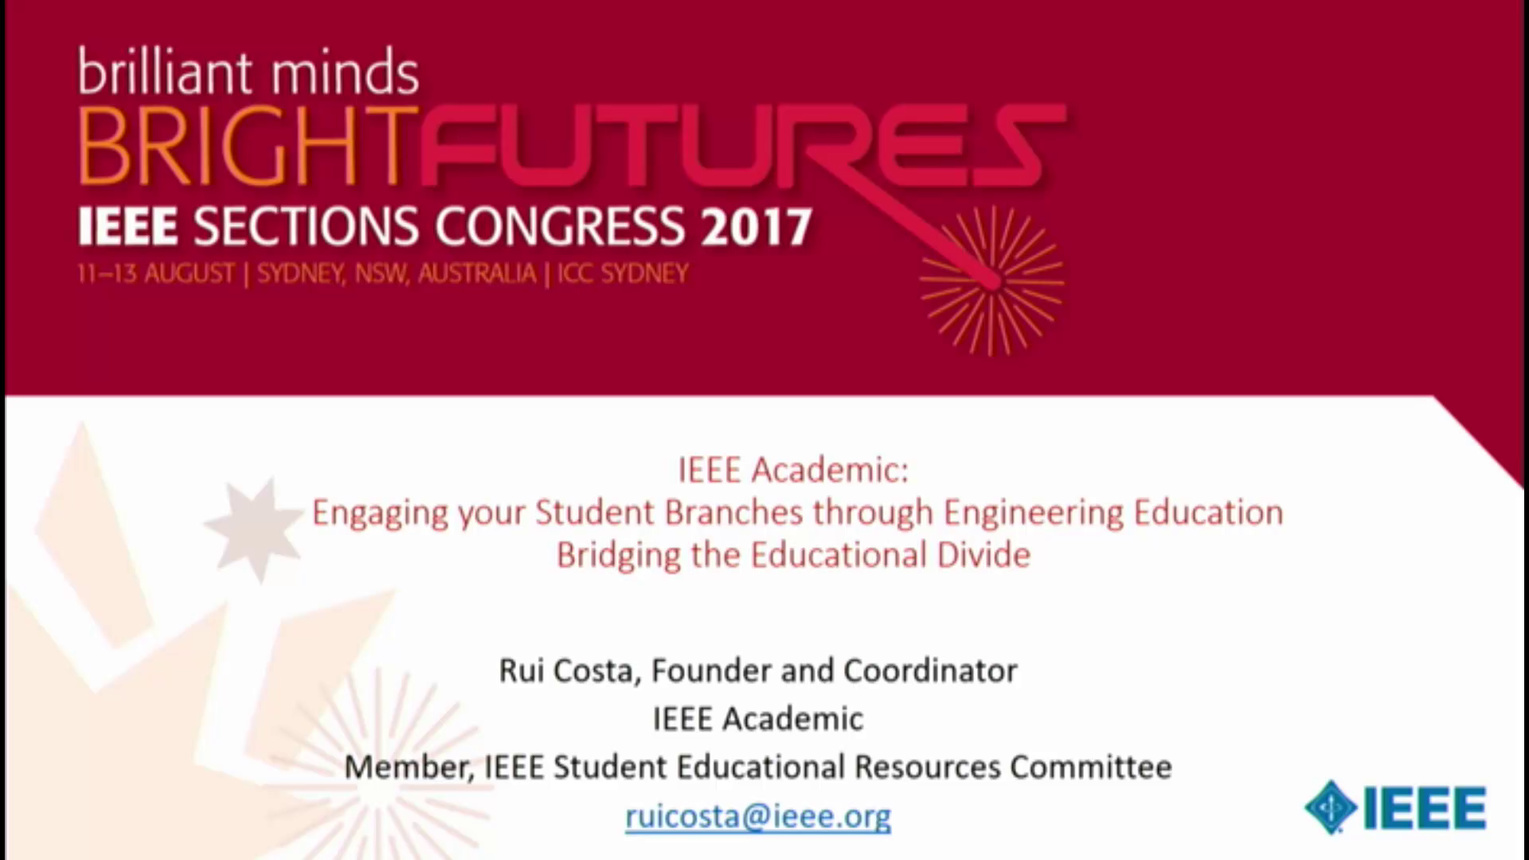 IEEE Academic: Bridging the Educational Divide - Rui Costa - Brief Sessions: Sections Congress 2017